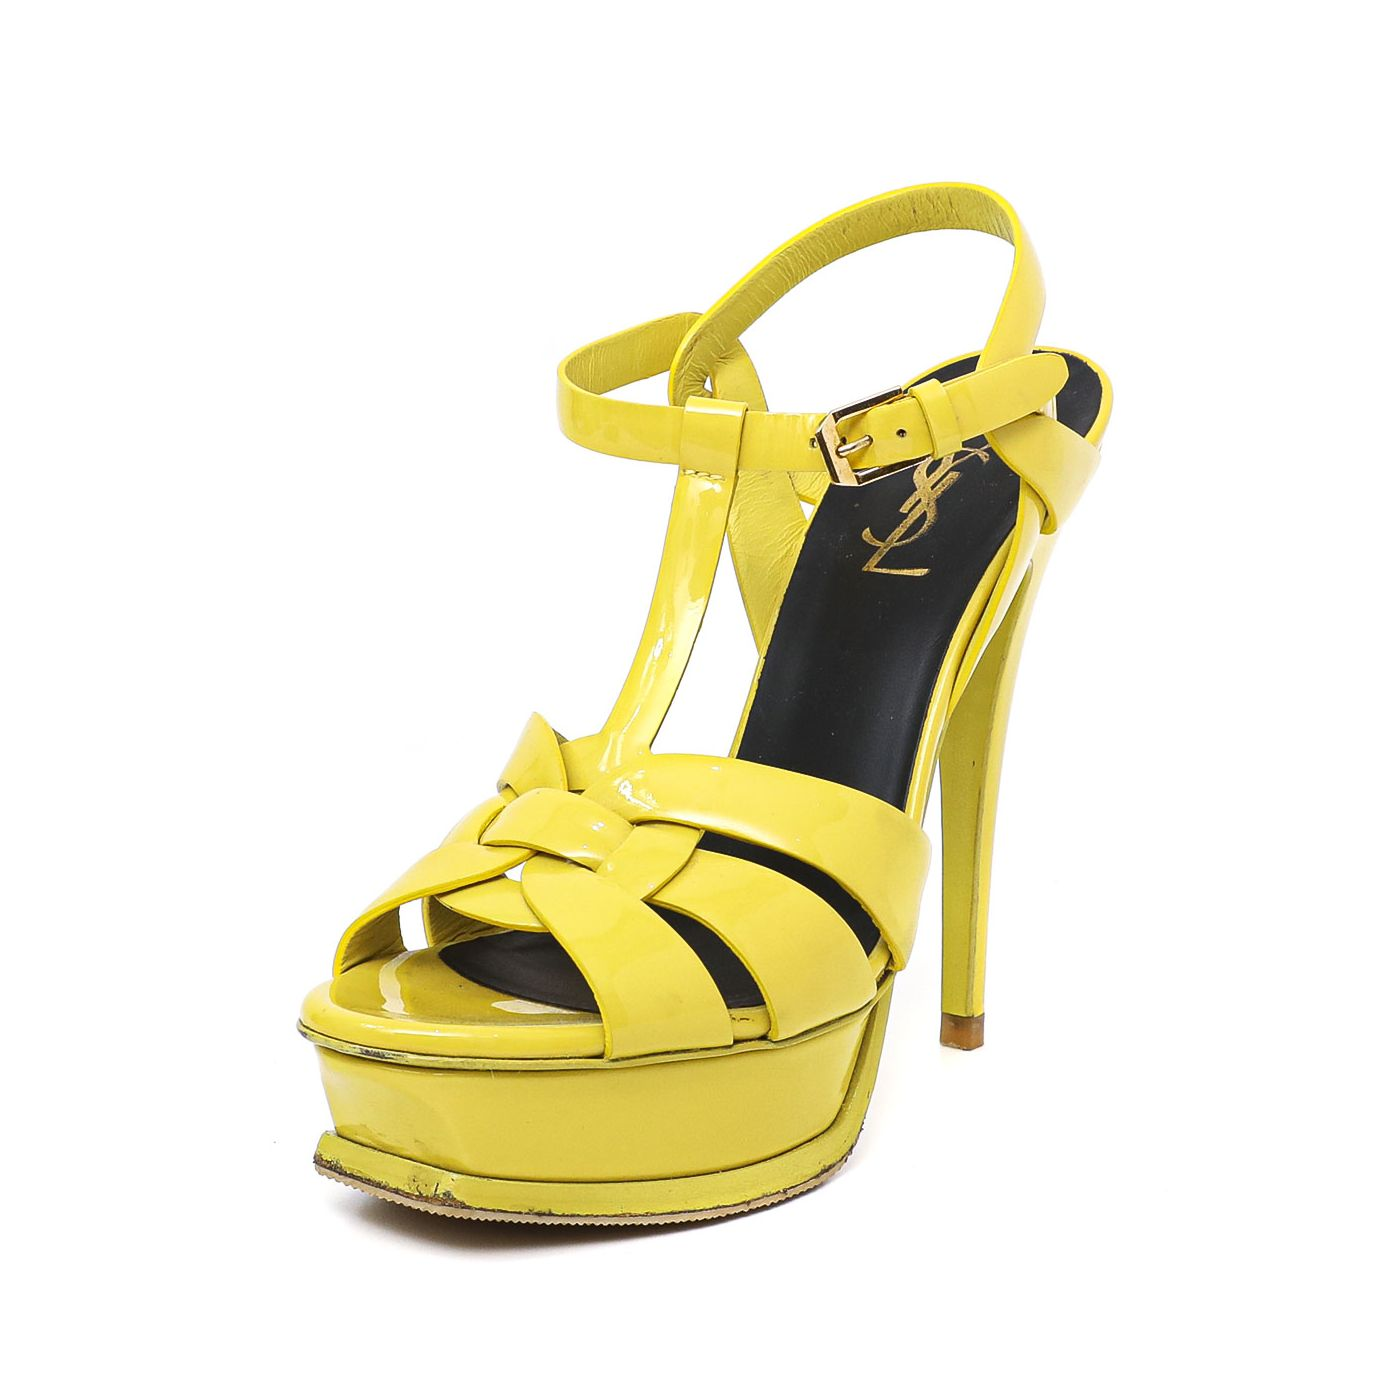 YSL Yellow Tribute Sandals 37.5